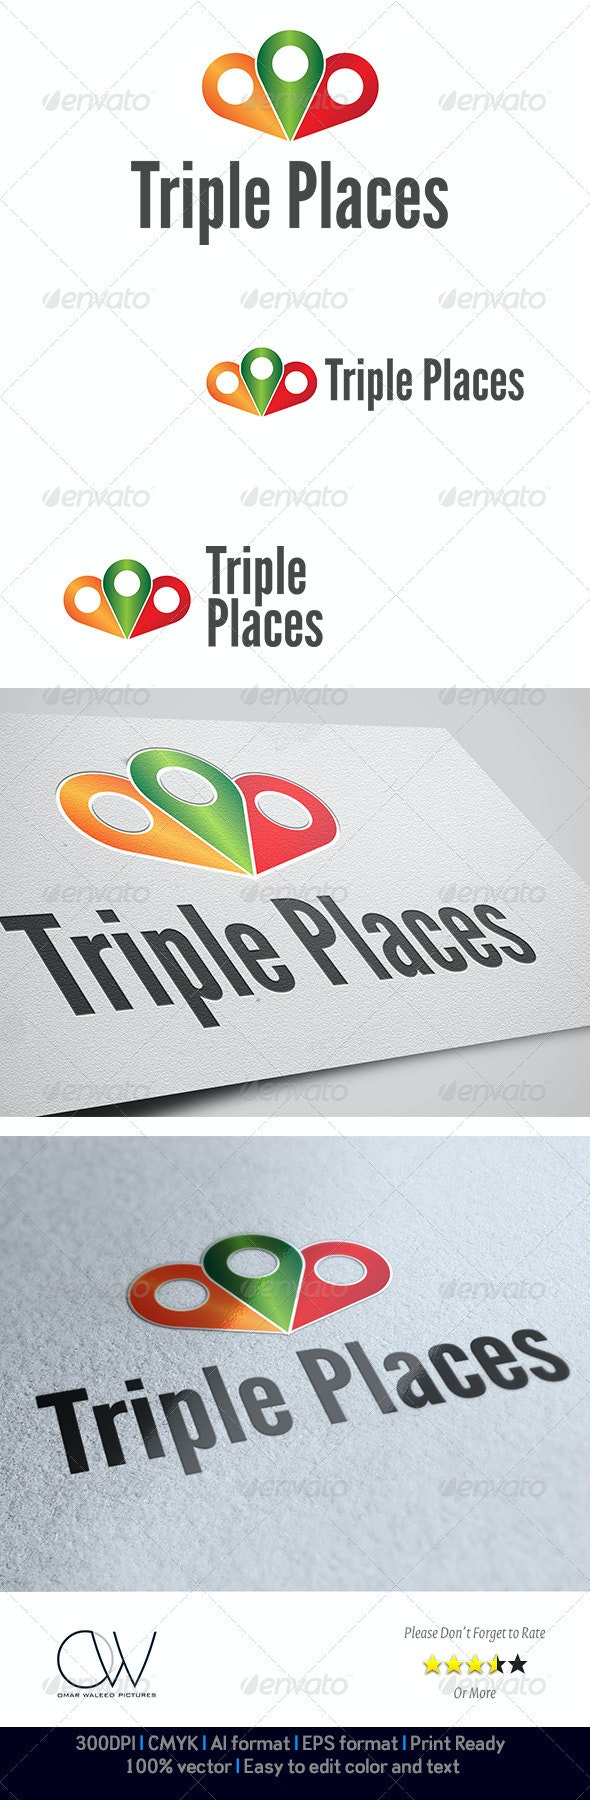 Triple Places Logo - Abstract Logo Templates